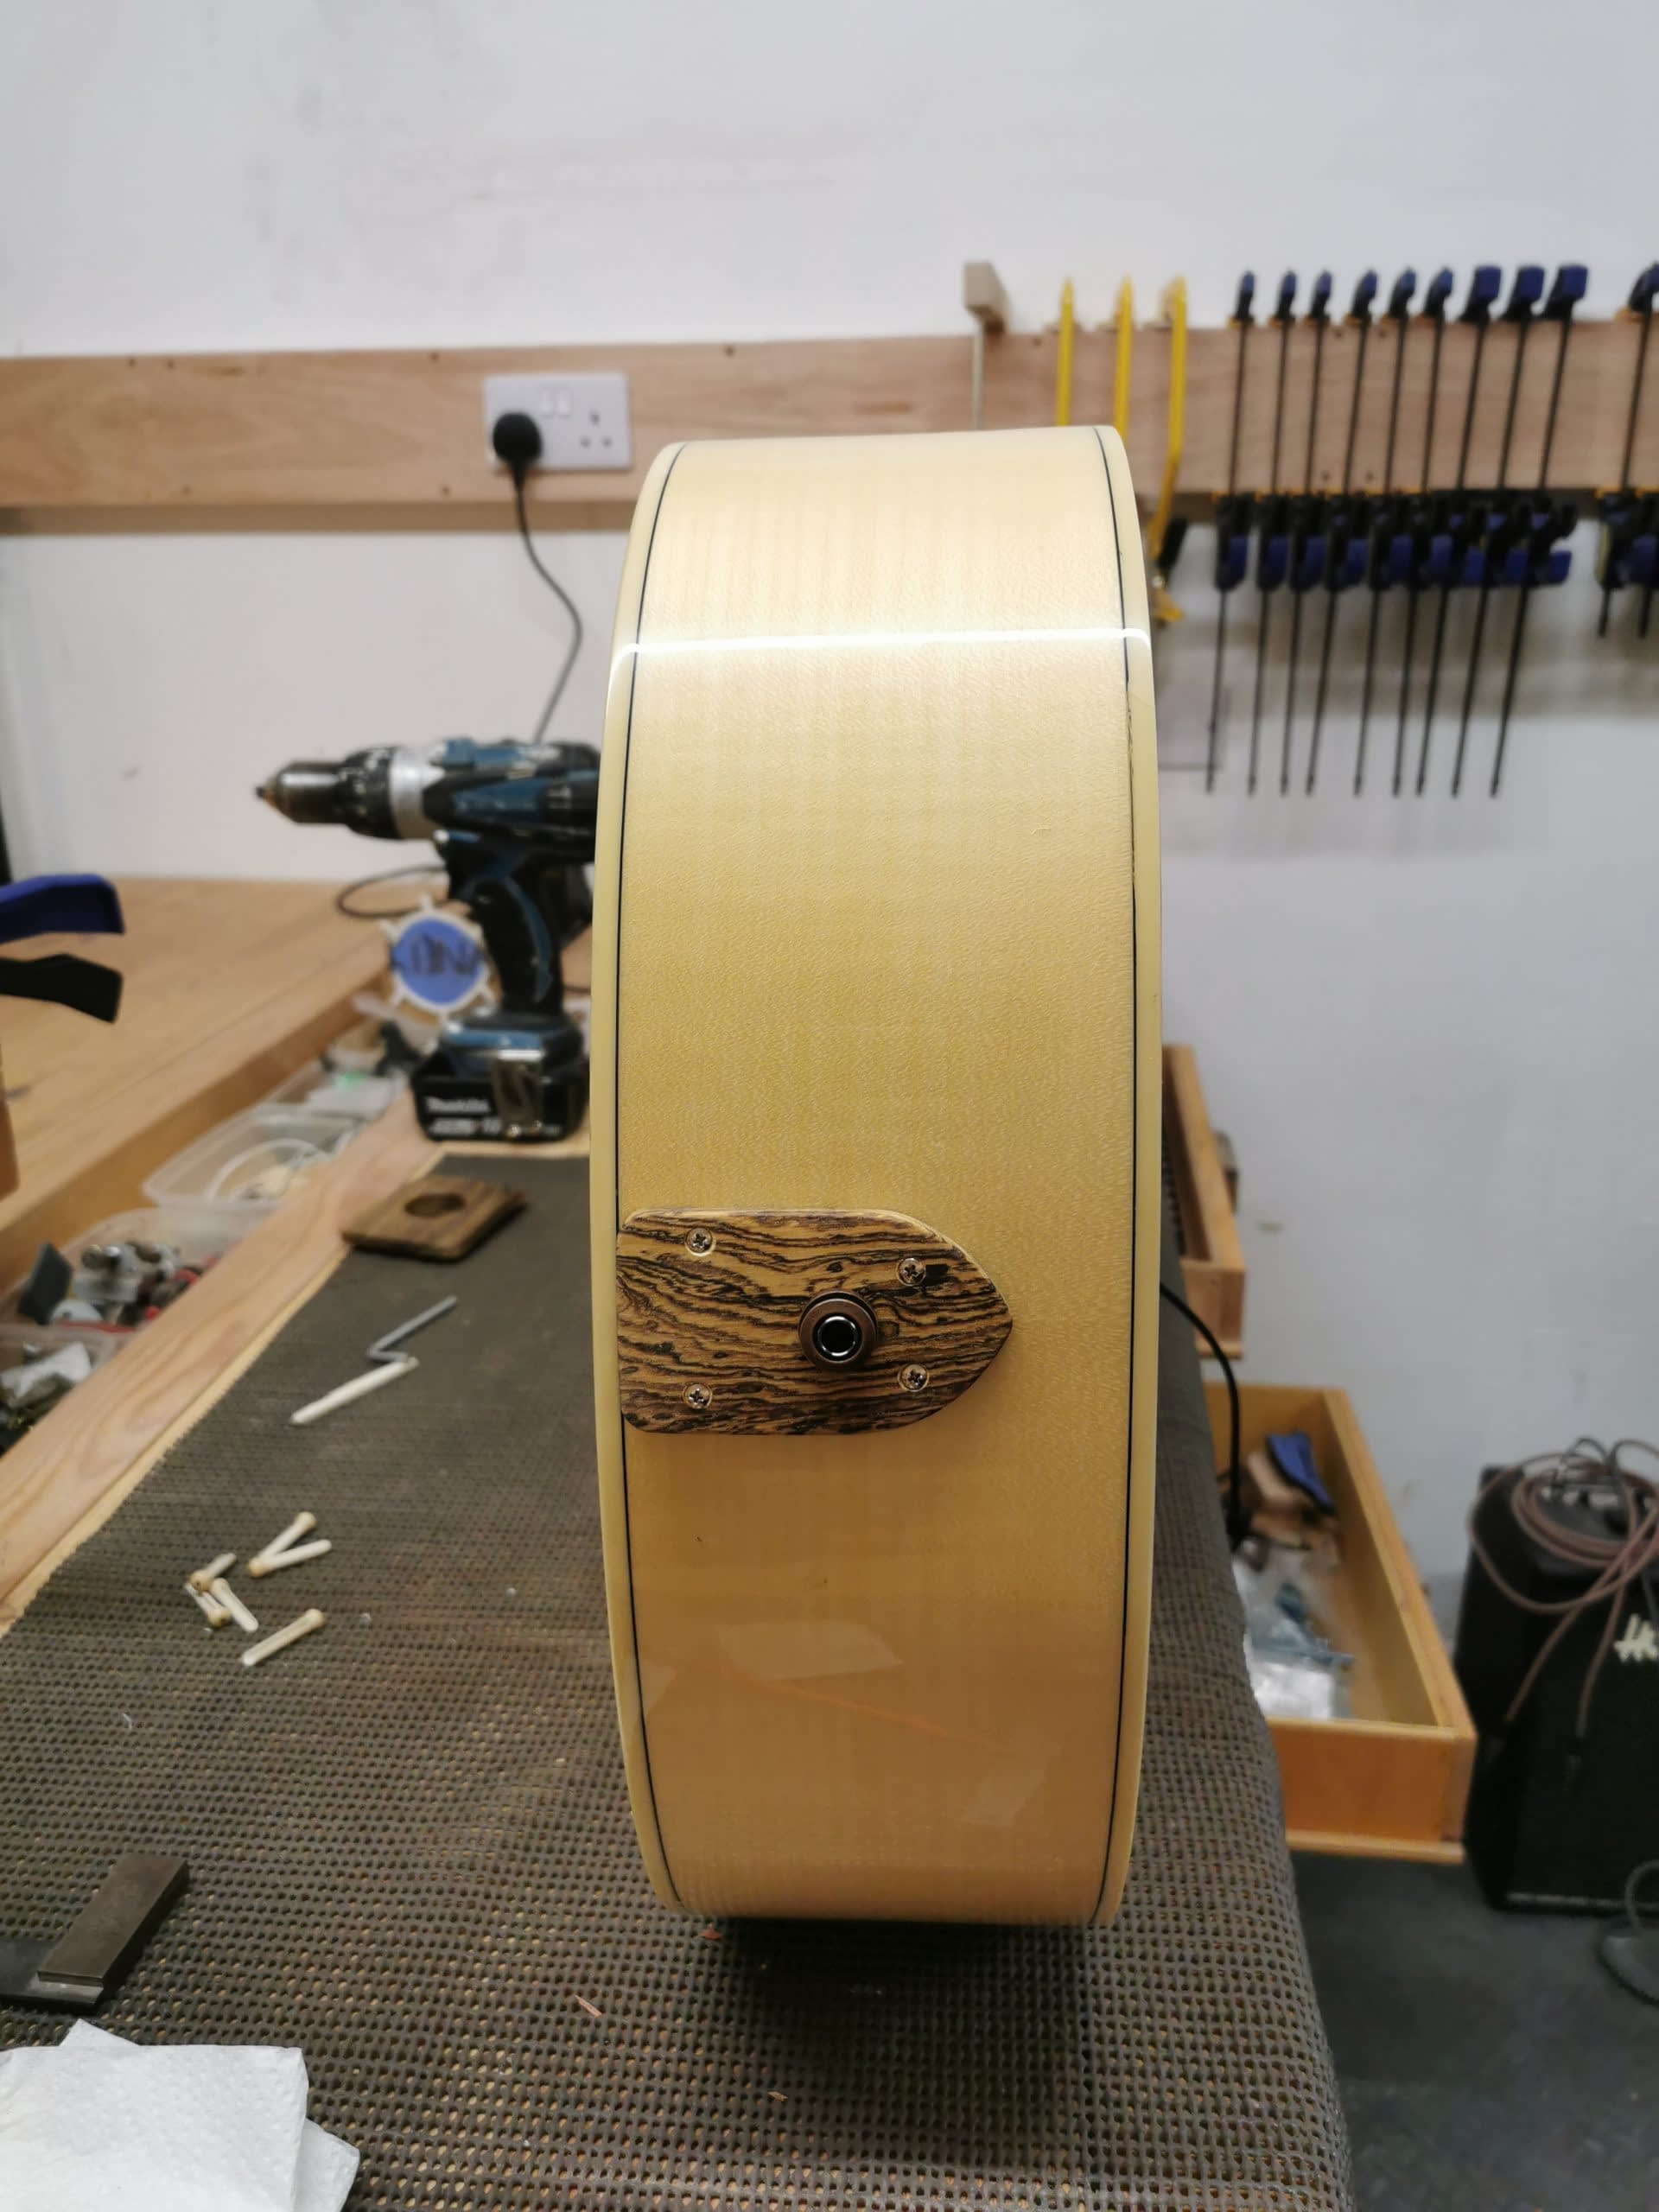 Battery Hole Plug and New Jack guitar repair stroud